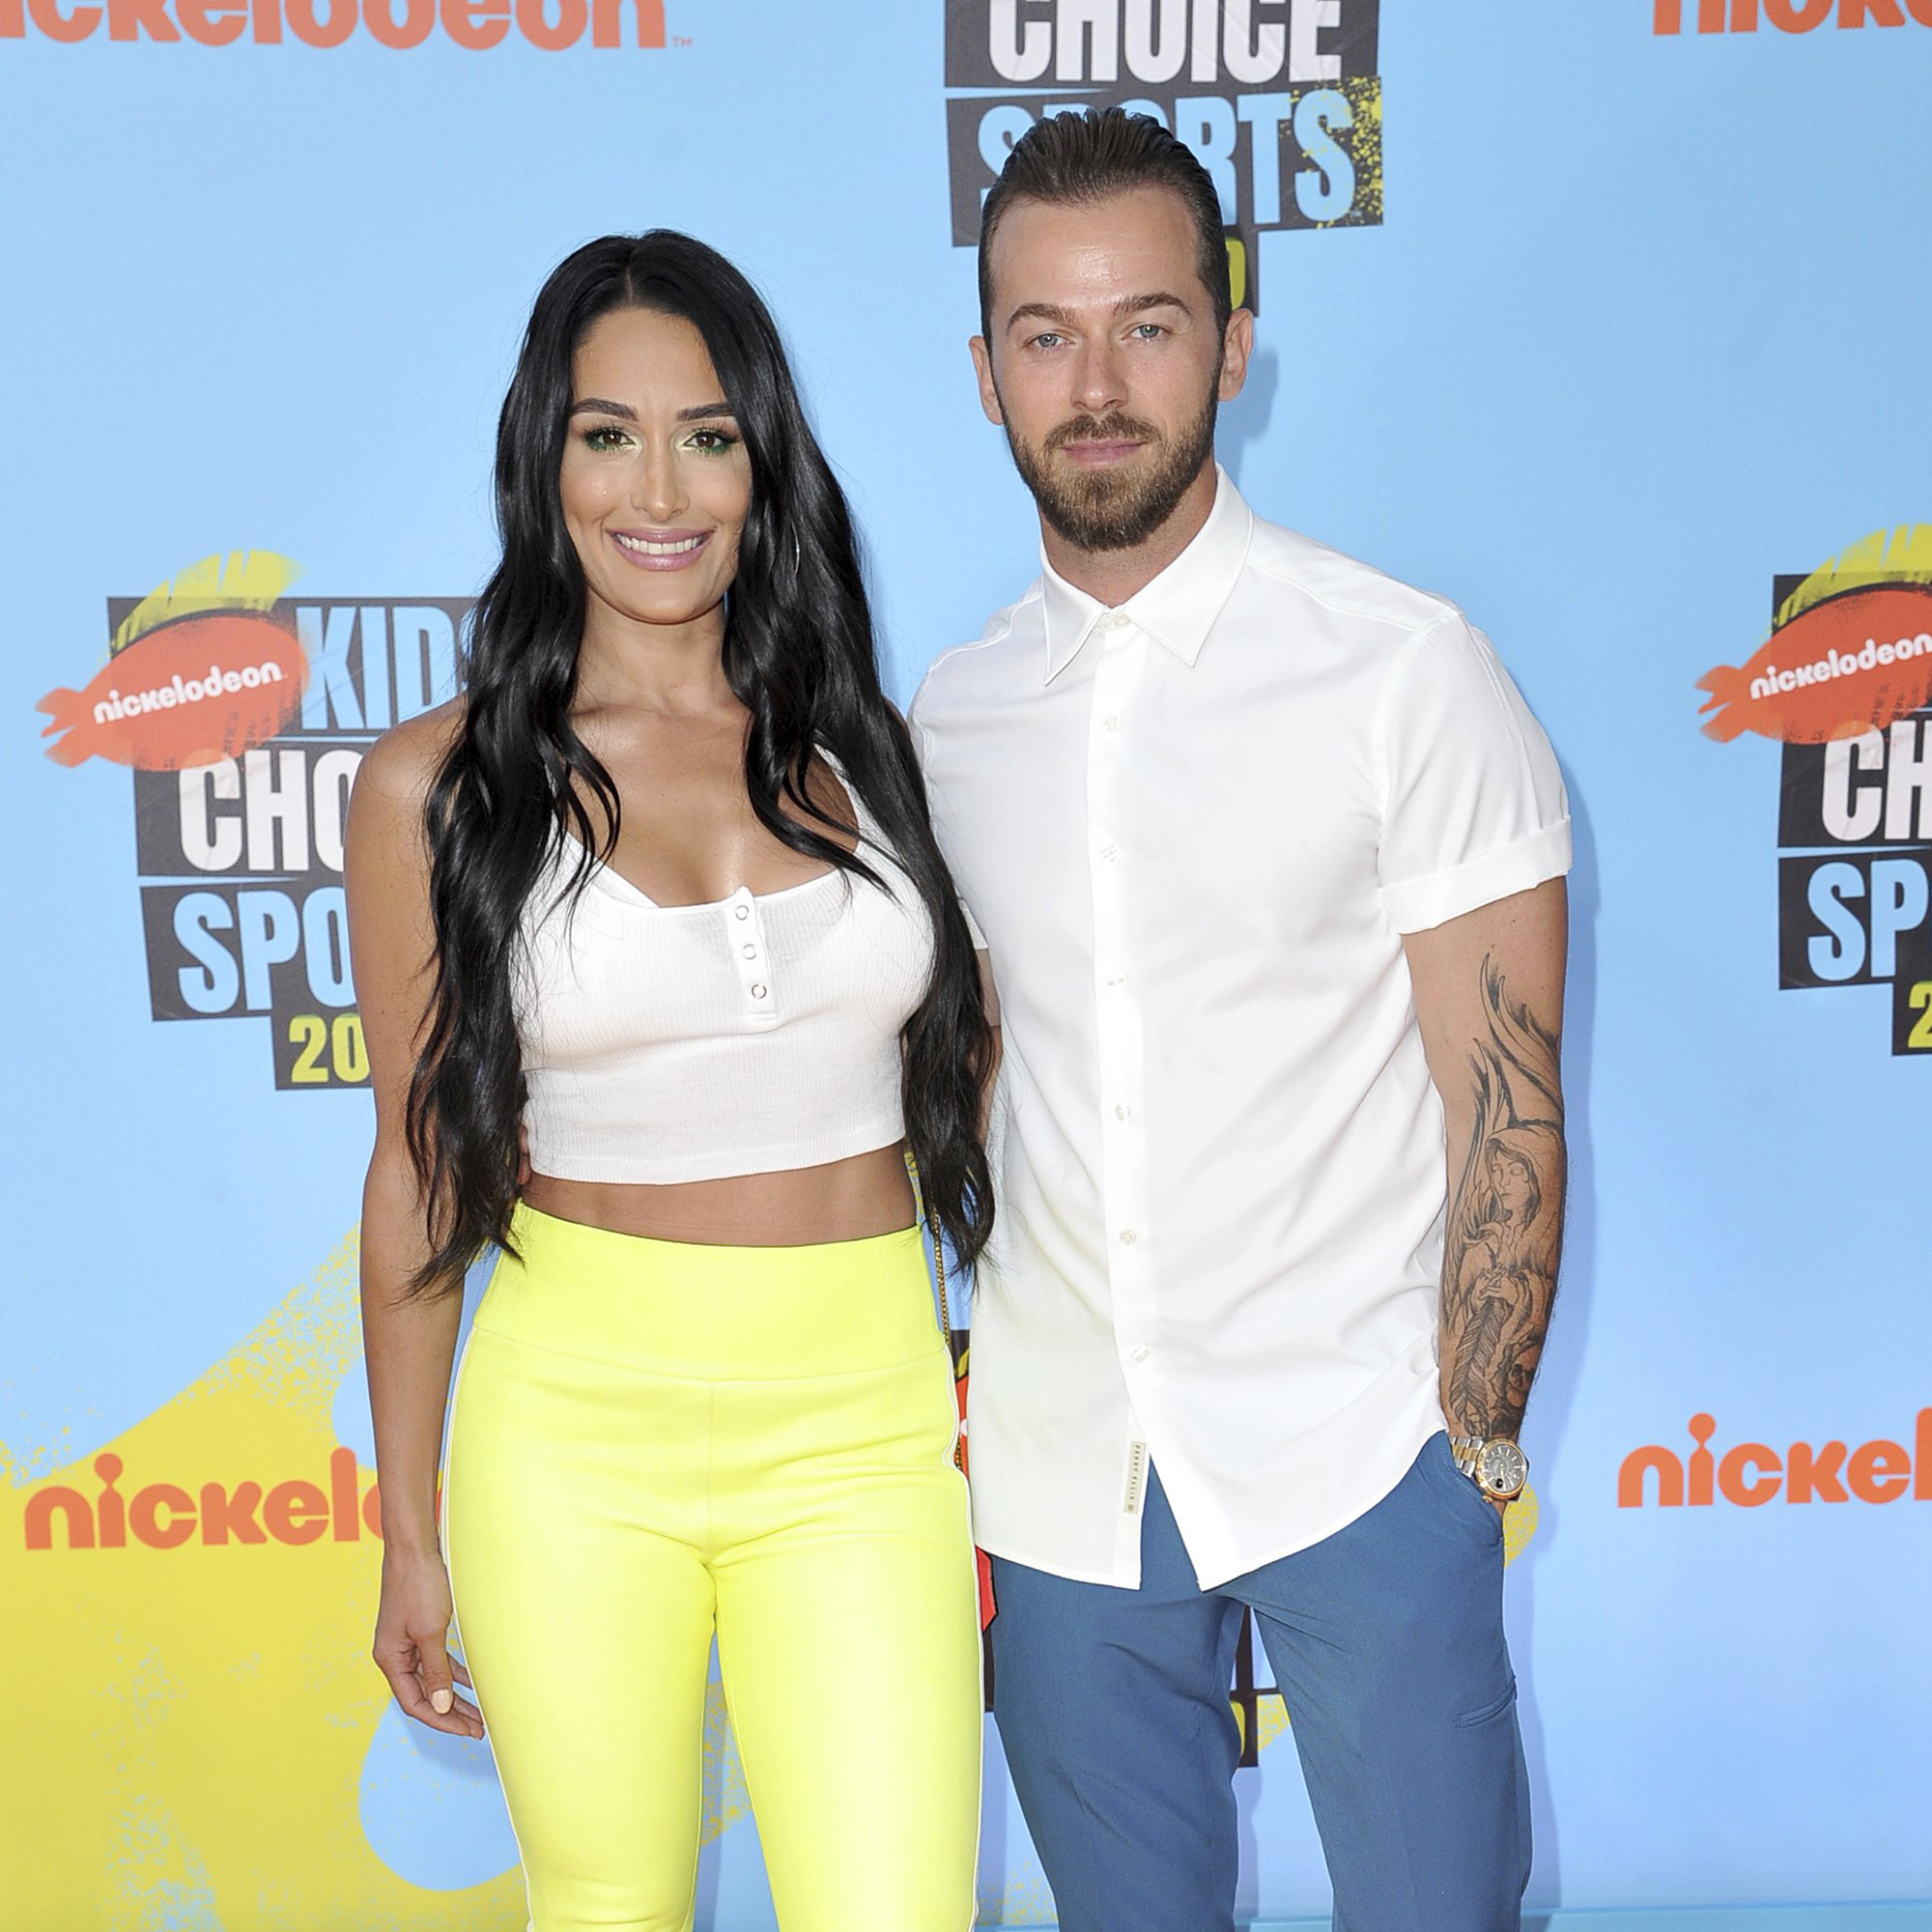 Nikki Bella and \u0027DWTS\u0027 pro Artem Chigvintsev make their